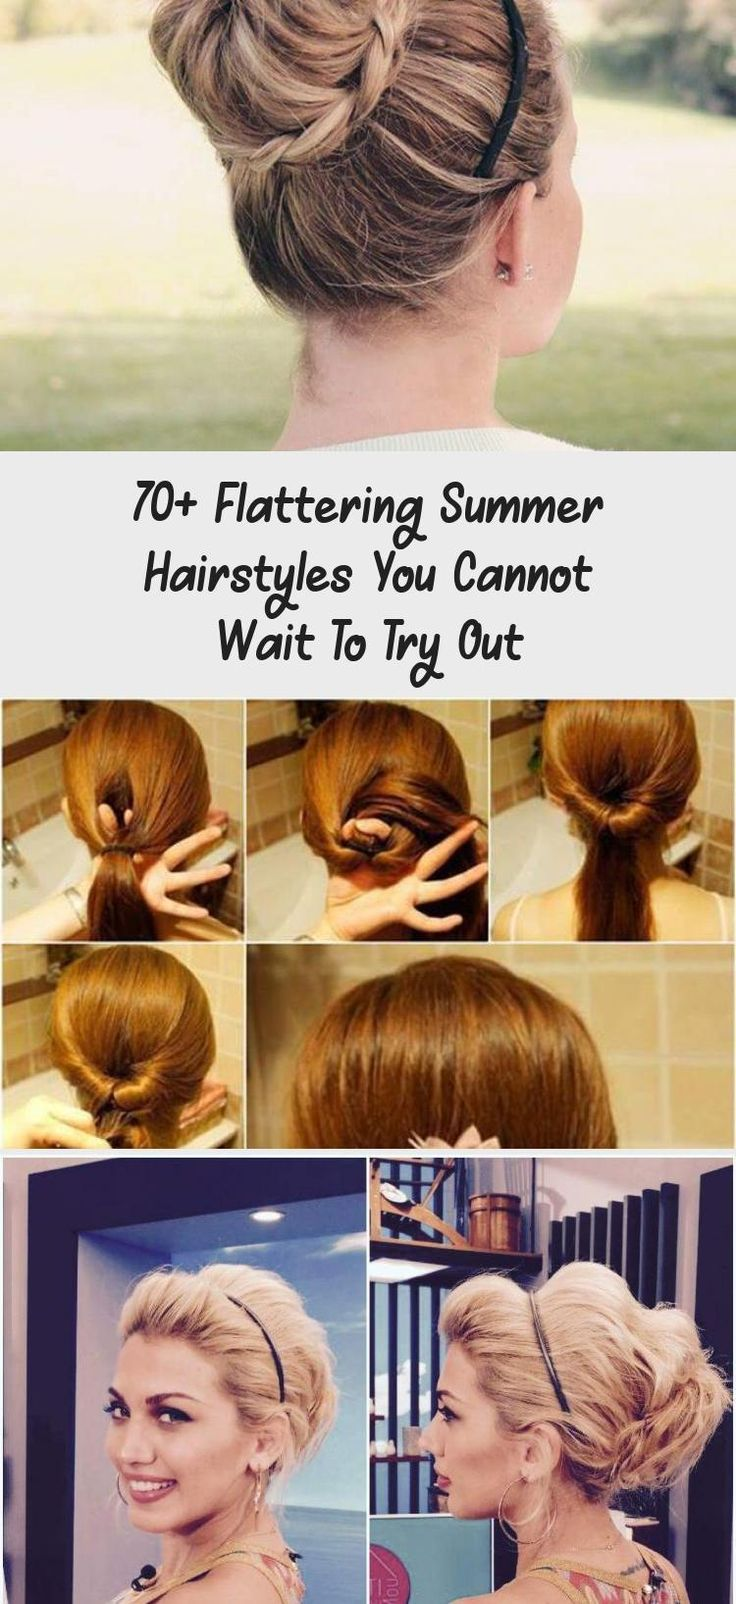 Airy Easy Neat Summer Toddler Ponytail in Bow for Short Straight Hair #Summerhair #Summerhairstyles #Hairstyles #Hairstylesforwomen #Shorthair #Ponytail #Ponytailhairstyles #babyhairstylesWomen #babyhairstylesBaptism #babyhairstylesForShortHair #babyhairstylesWithRubberbands #babyhairstylesBraids